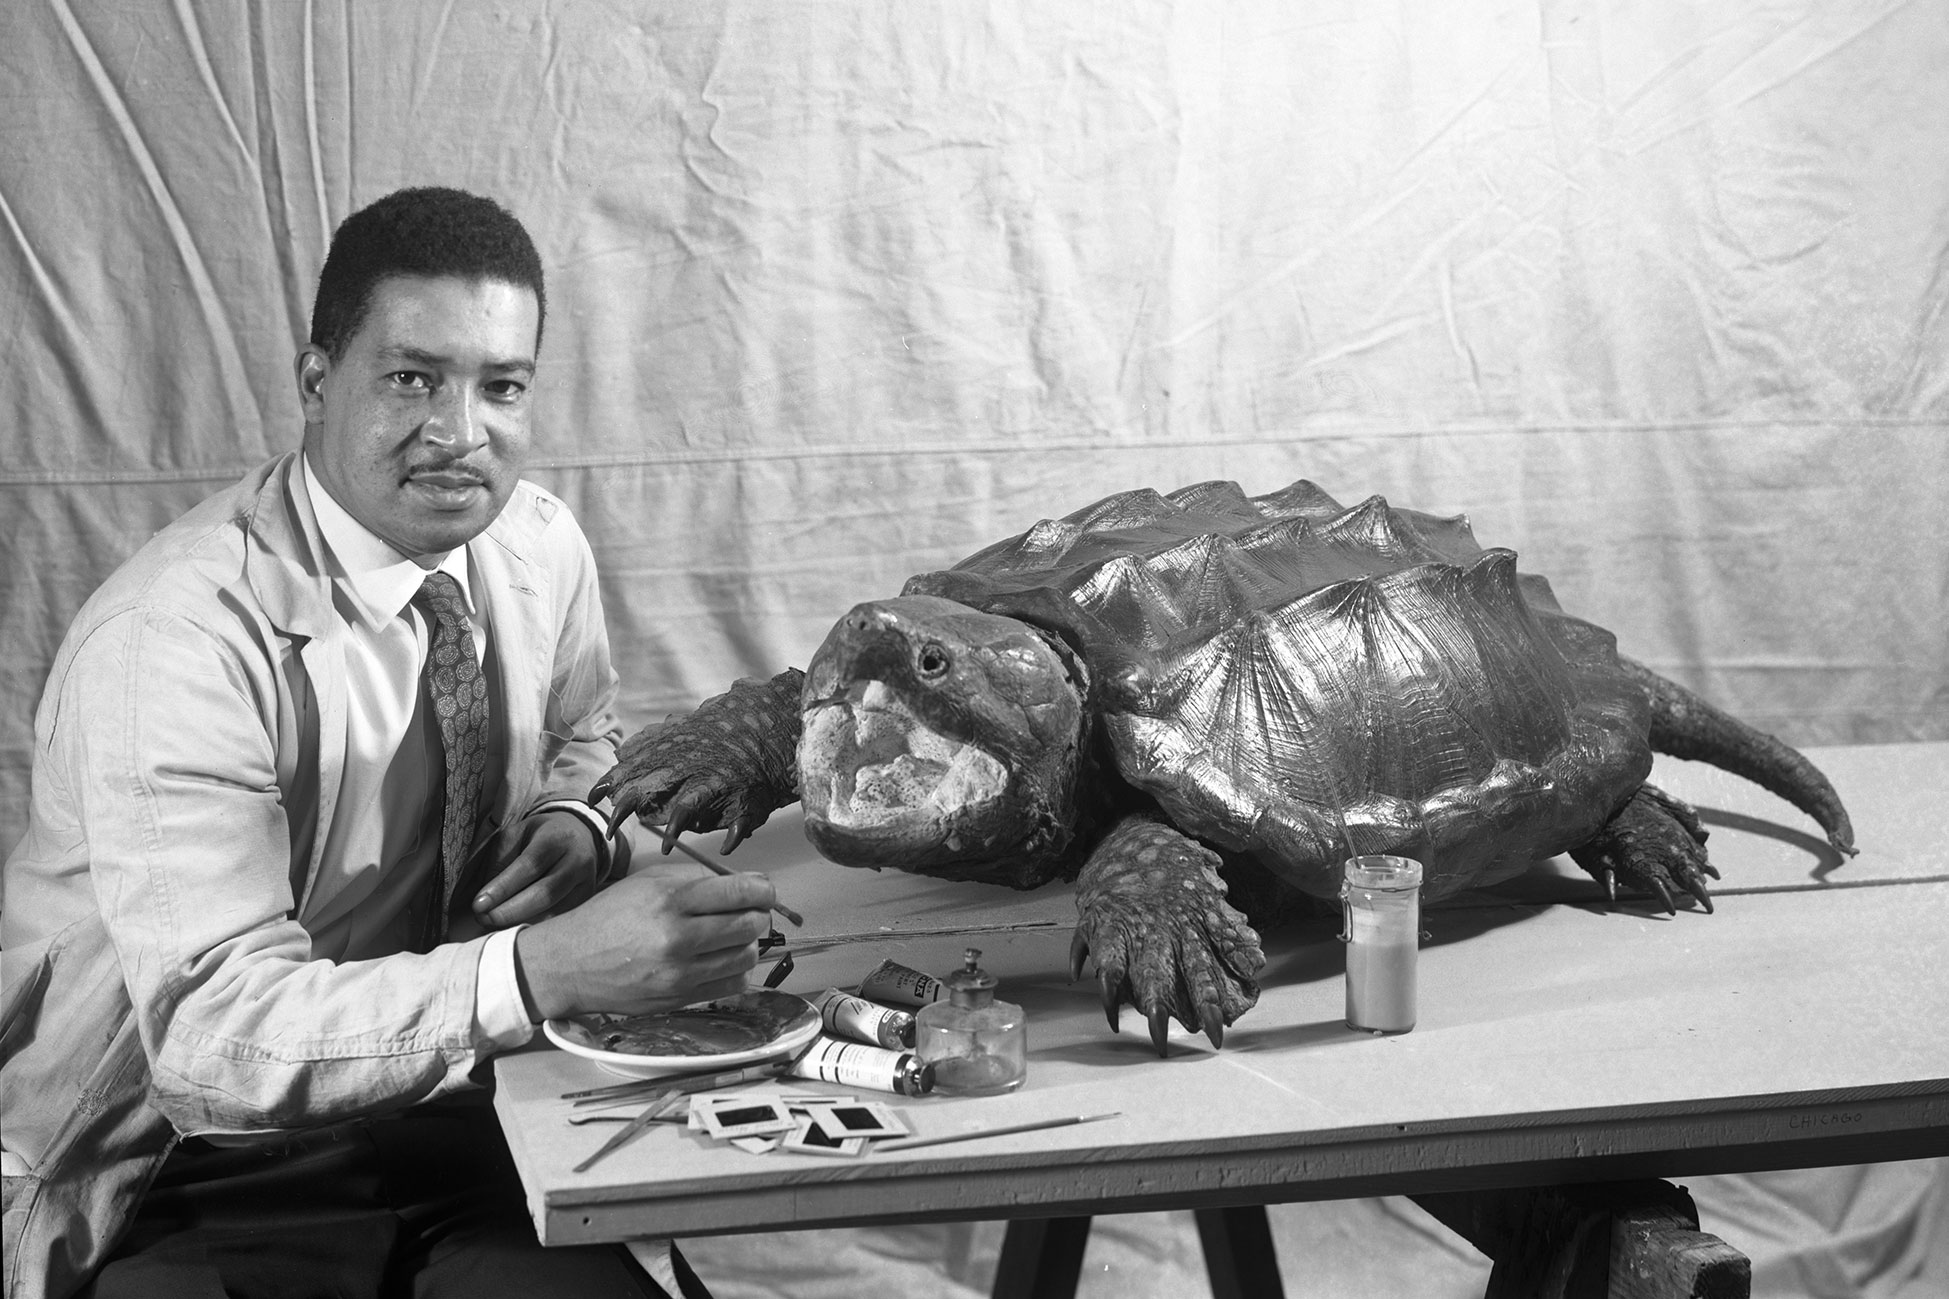 Carl Cotton, holding a paintbrush, sits at a table with various art supplies and a large model of a turtle.